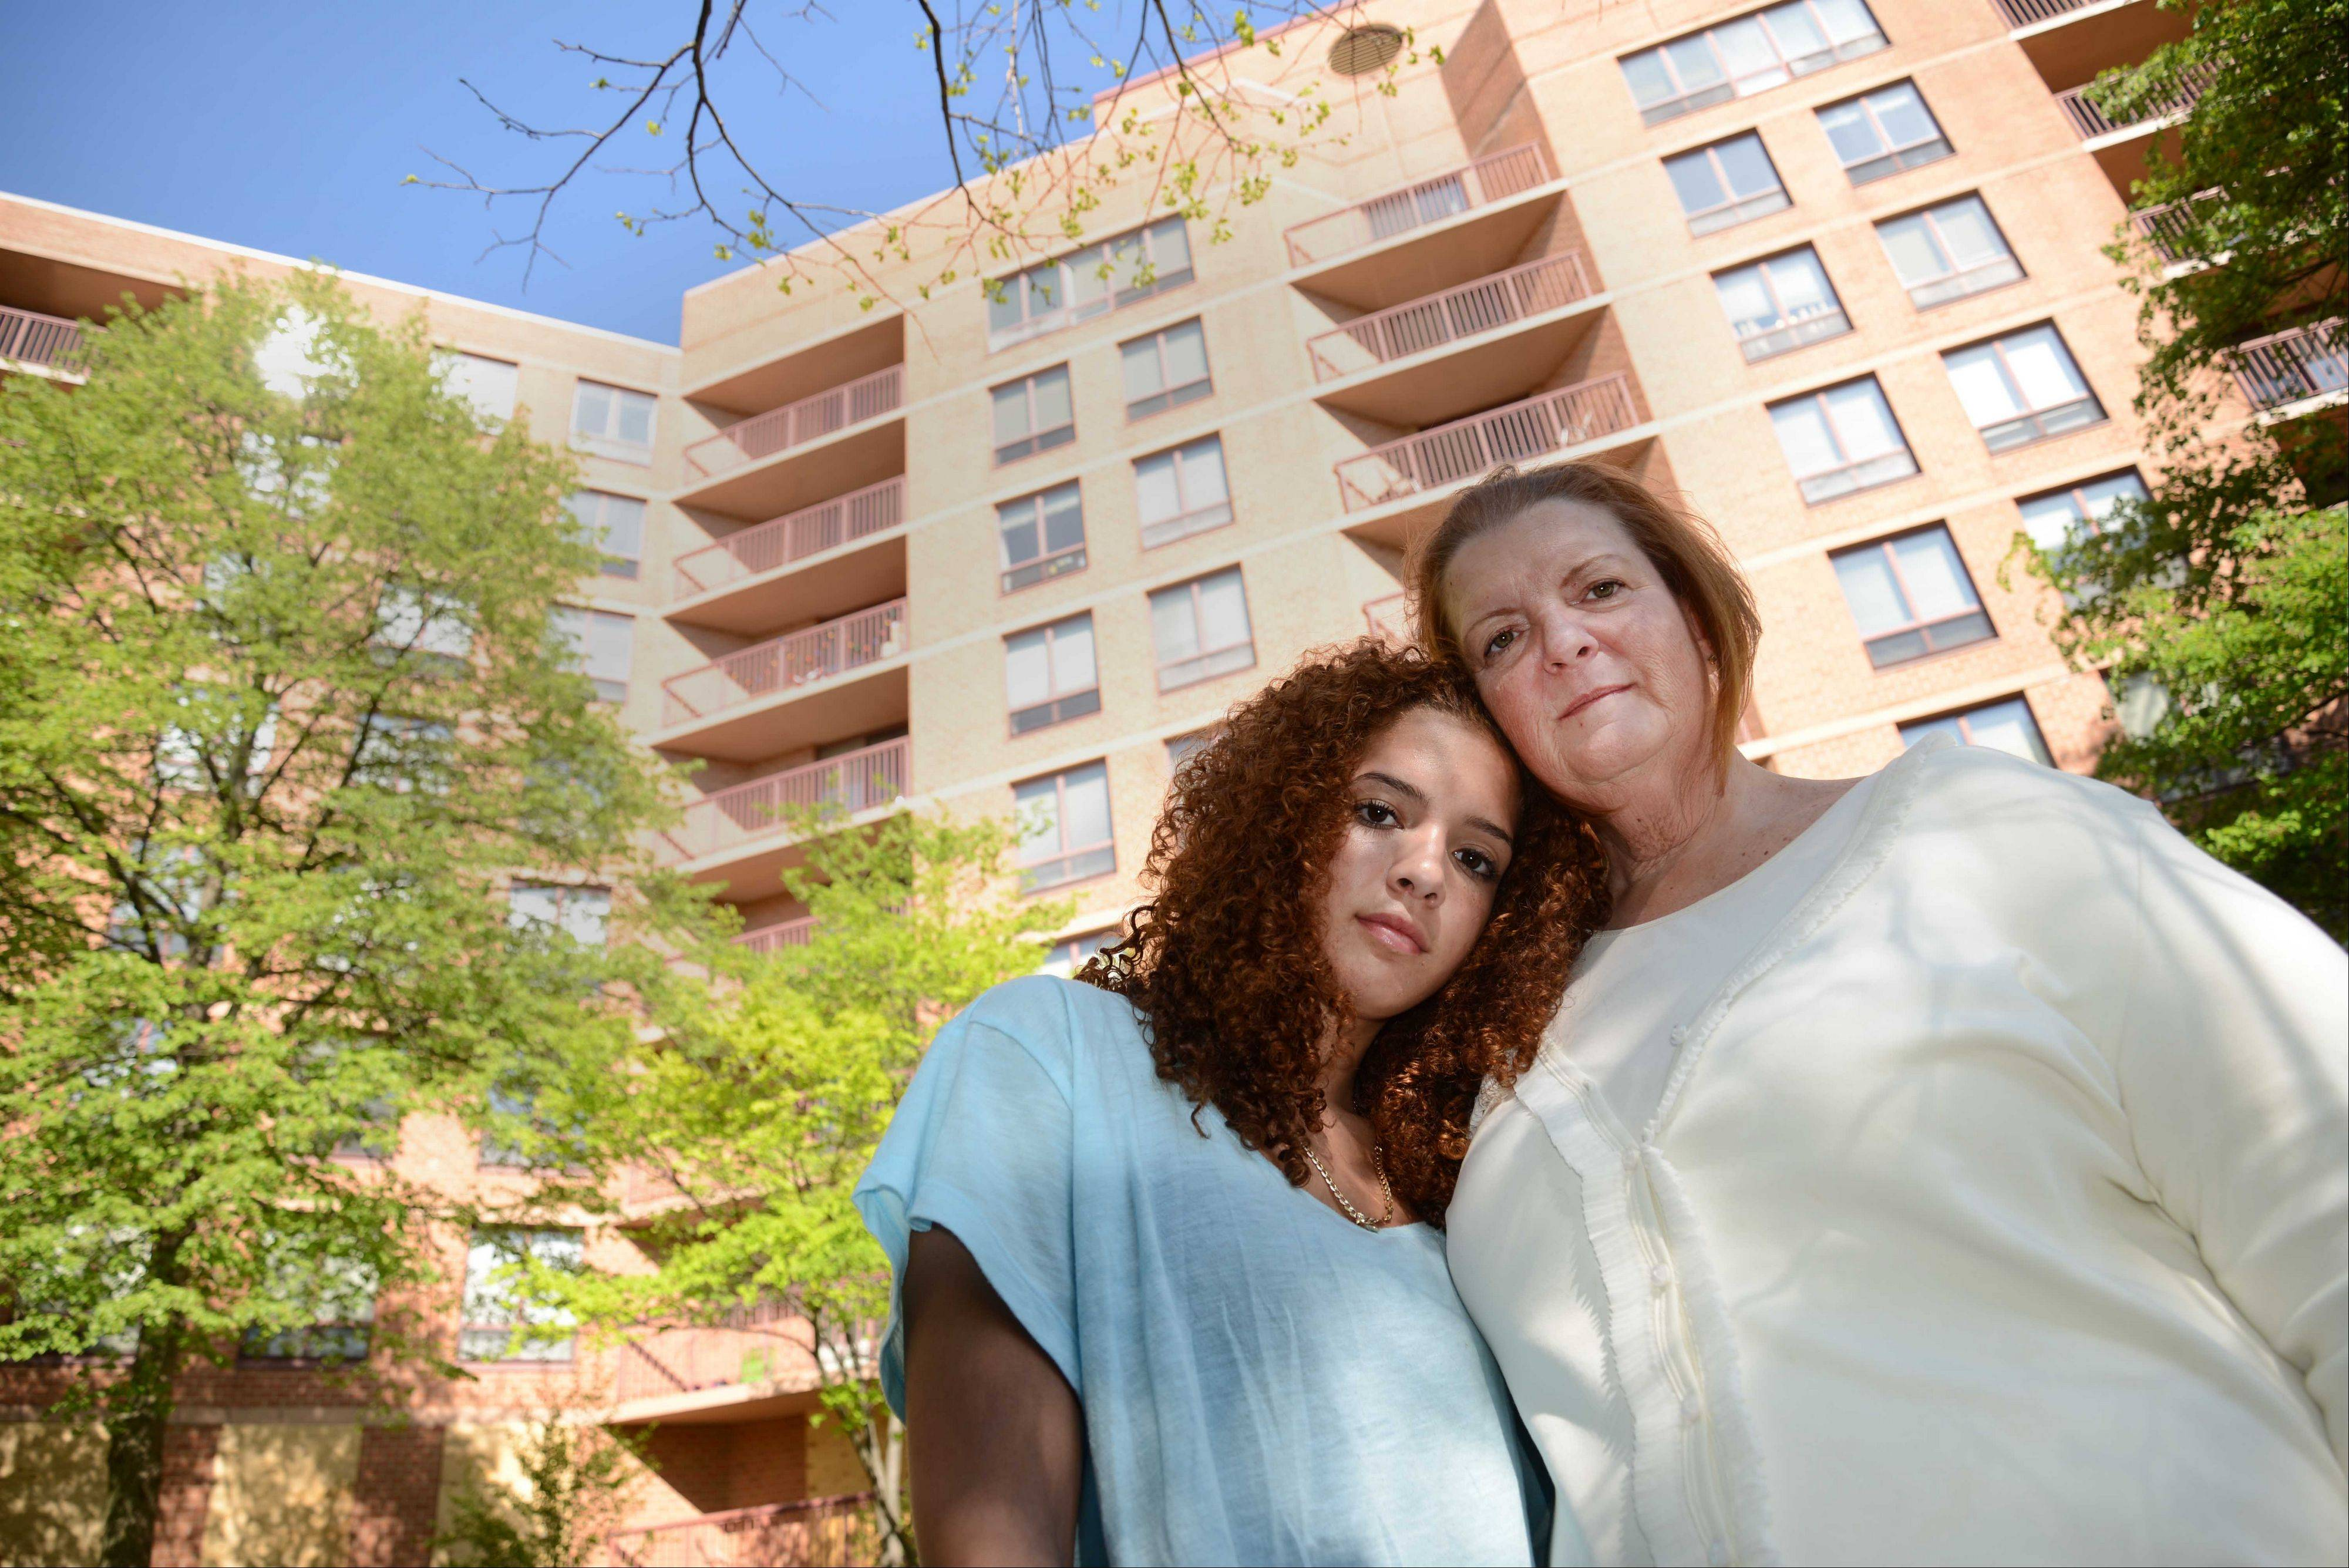 Towers at Four Lakes resident Debra Schulz and her 15-year-old daughter, Haleigh, can't move back into their eighth-floor home until June 15, nearly two months after flooding destroyed the building's electrical system.